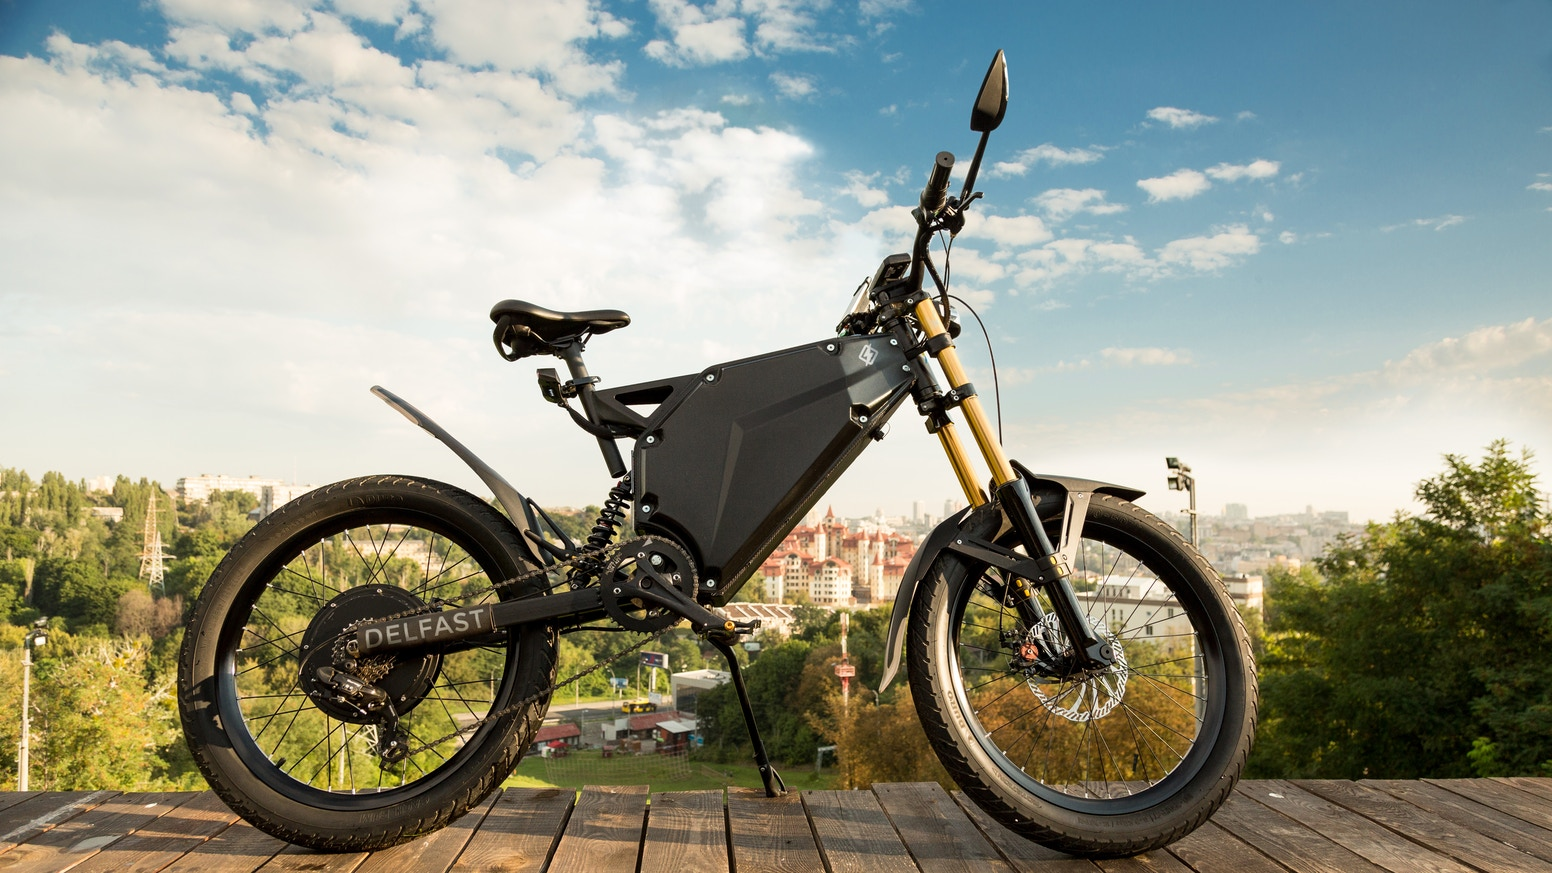 Delfast electric bikes set world record for range and enter full production